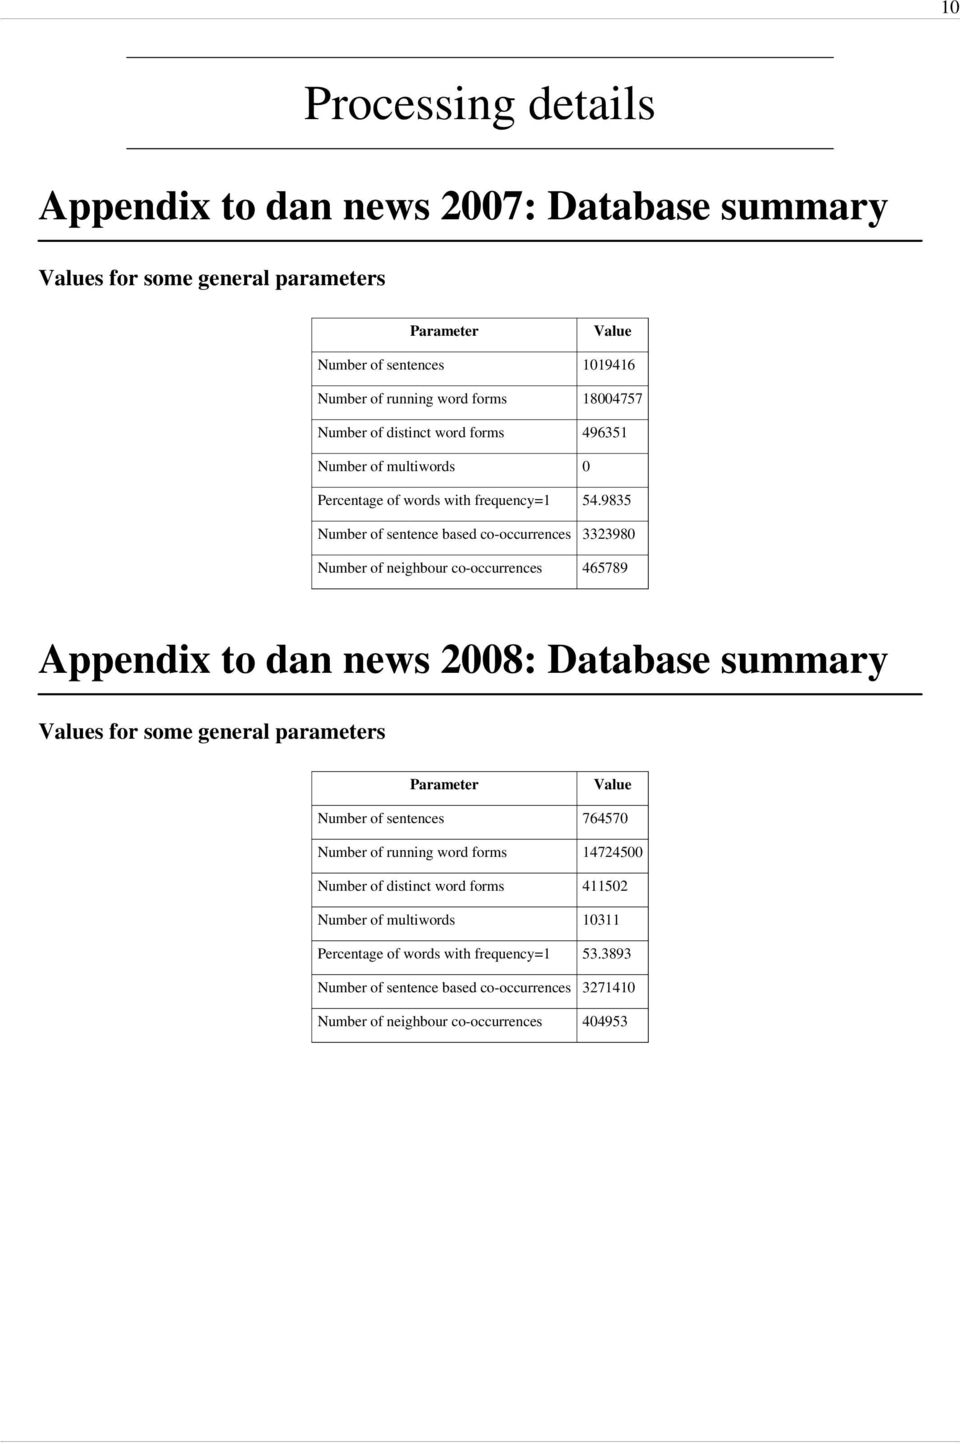 9835 Number of sentence based co-occurrences 3323980 Number of neighbour co-occurrences 465789 Appendix to dan news 2008: Database summary Values for some general parameters Parameter